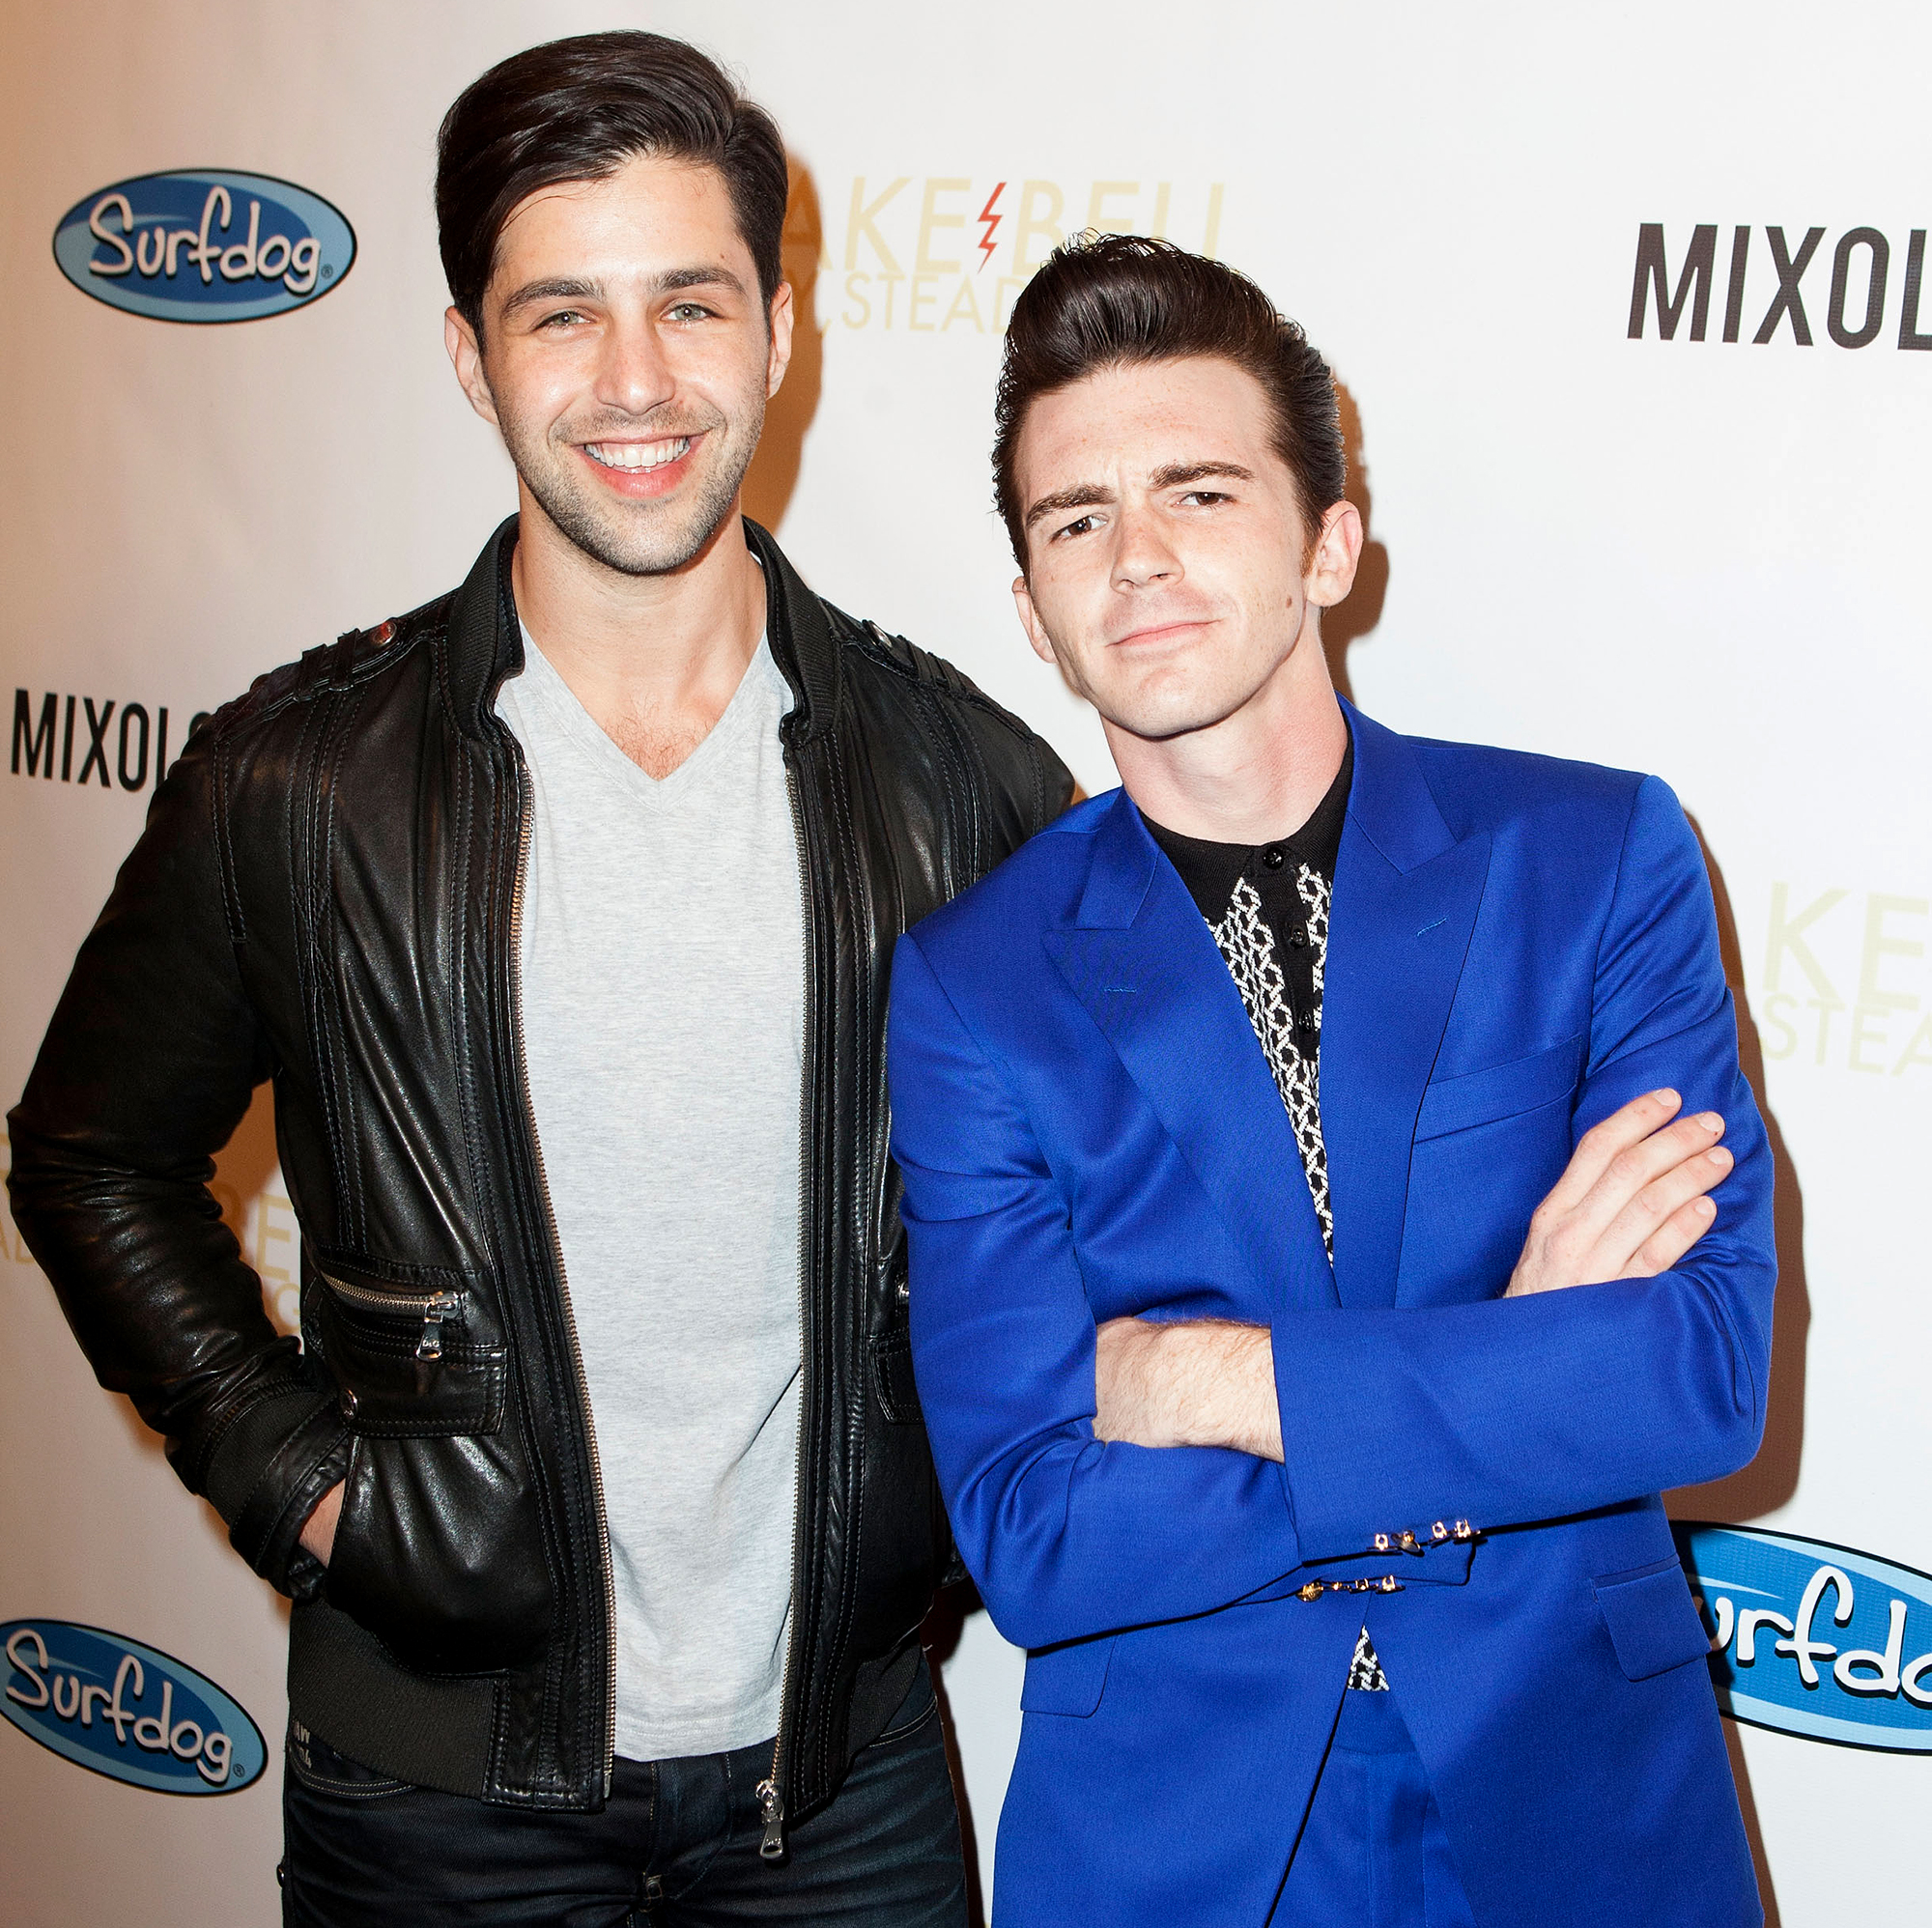 """Drake-Bell-Hasn't-Met-'Drake-&-Josh'-Costar-Josh-Peck's-Son-Yet-2 - Josh Peck and Drake Bell arrive for Drake Bell's """"Ready Steady Go!"""" Album Release Party at Mixology101 & Planet Dailies on April 17, 2014 in Los Angeles, California."""